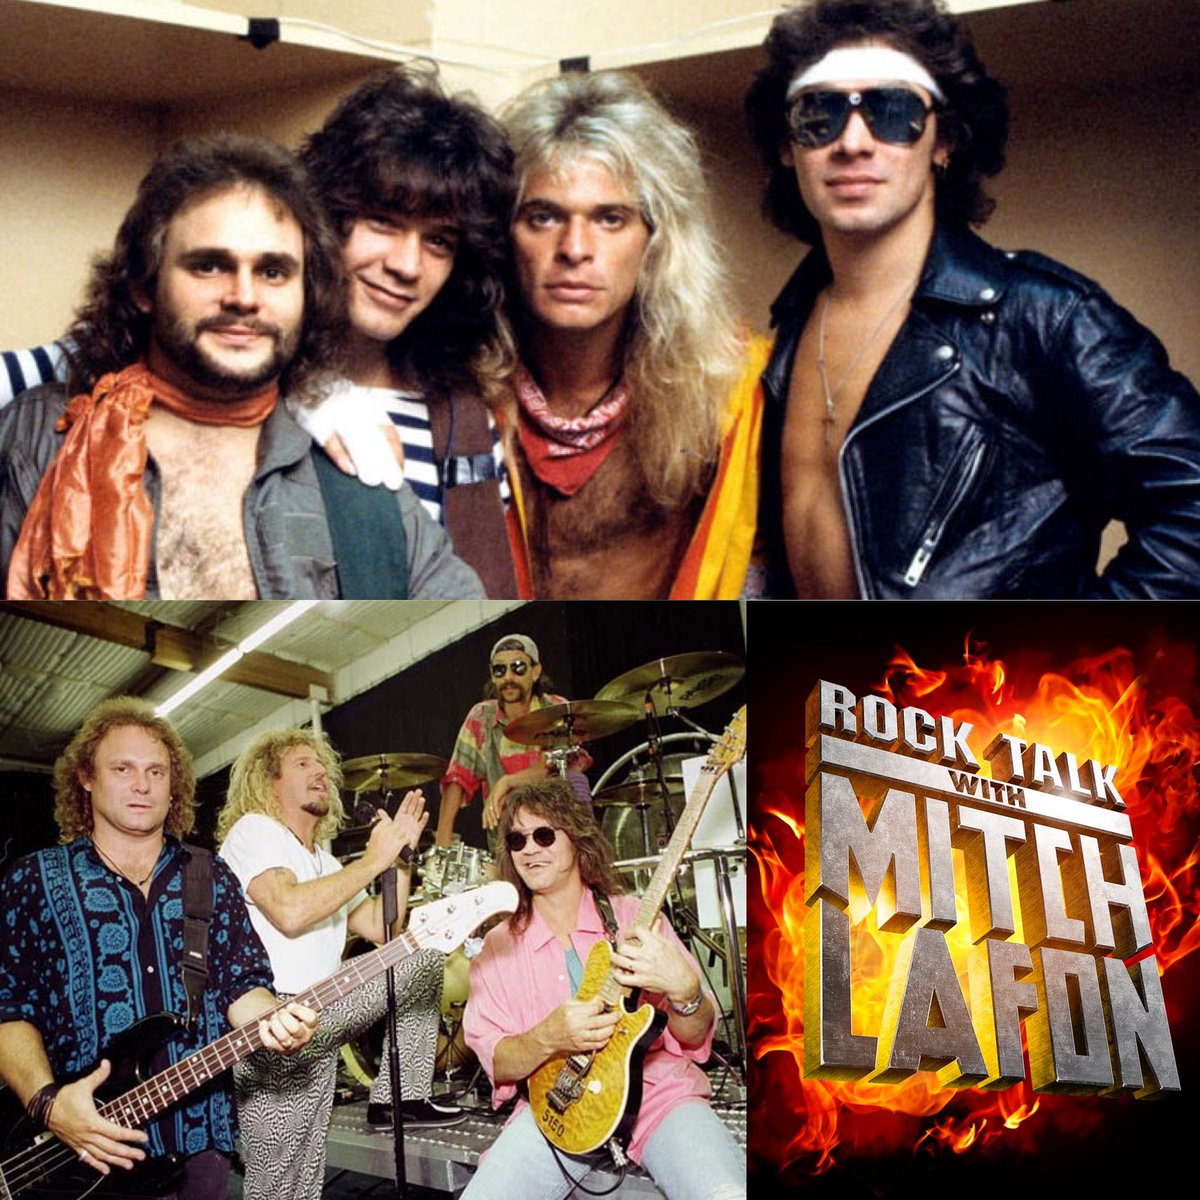 Would you rather have a new VAN HALEN album with David Lee Roth or Sammy Hagar? <br>http://pic.twitter.com/nWIYIWJJLx